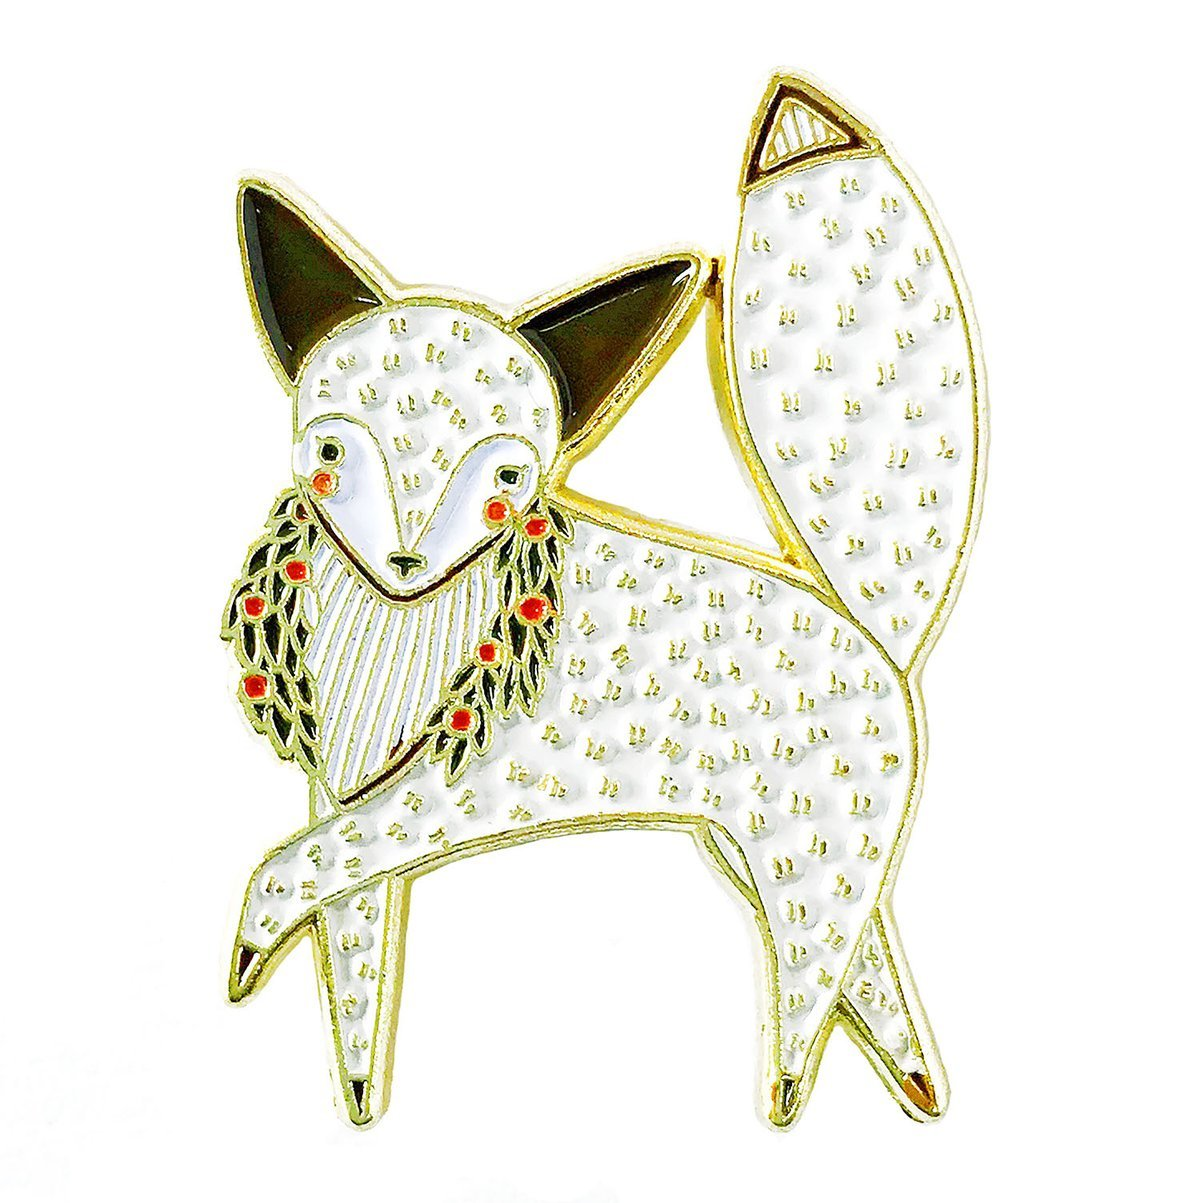 Gingiber - Enamel Pin - Merriment Arctic Fox